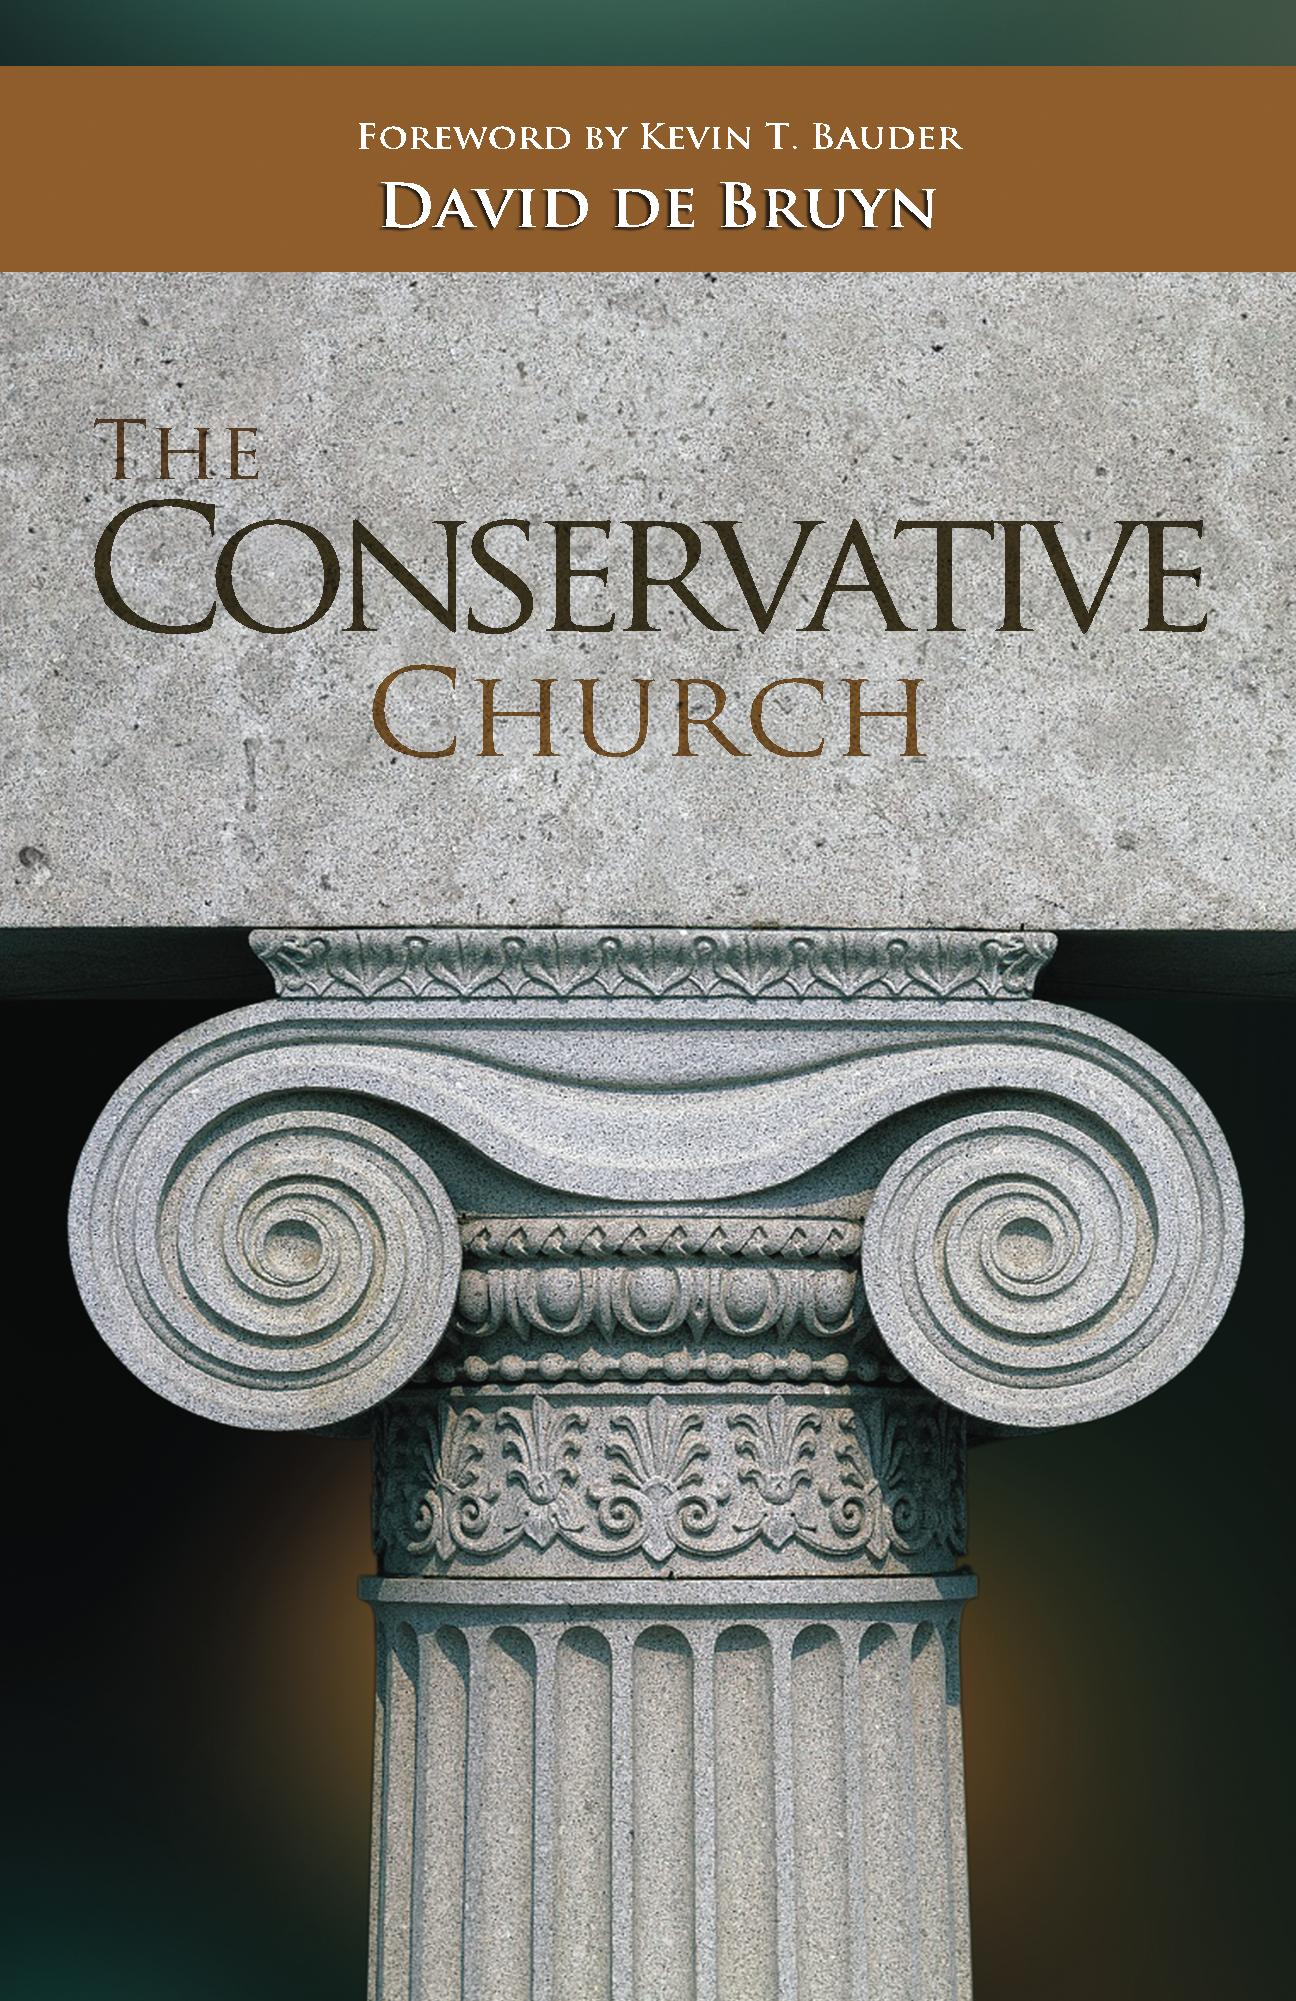 New book by David de Bruyn: The Conservative Church